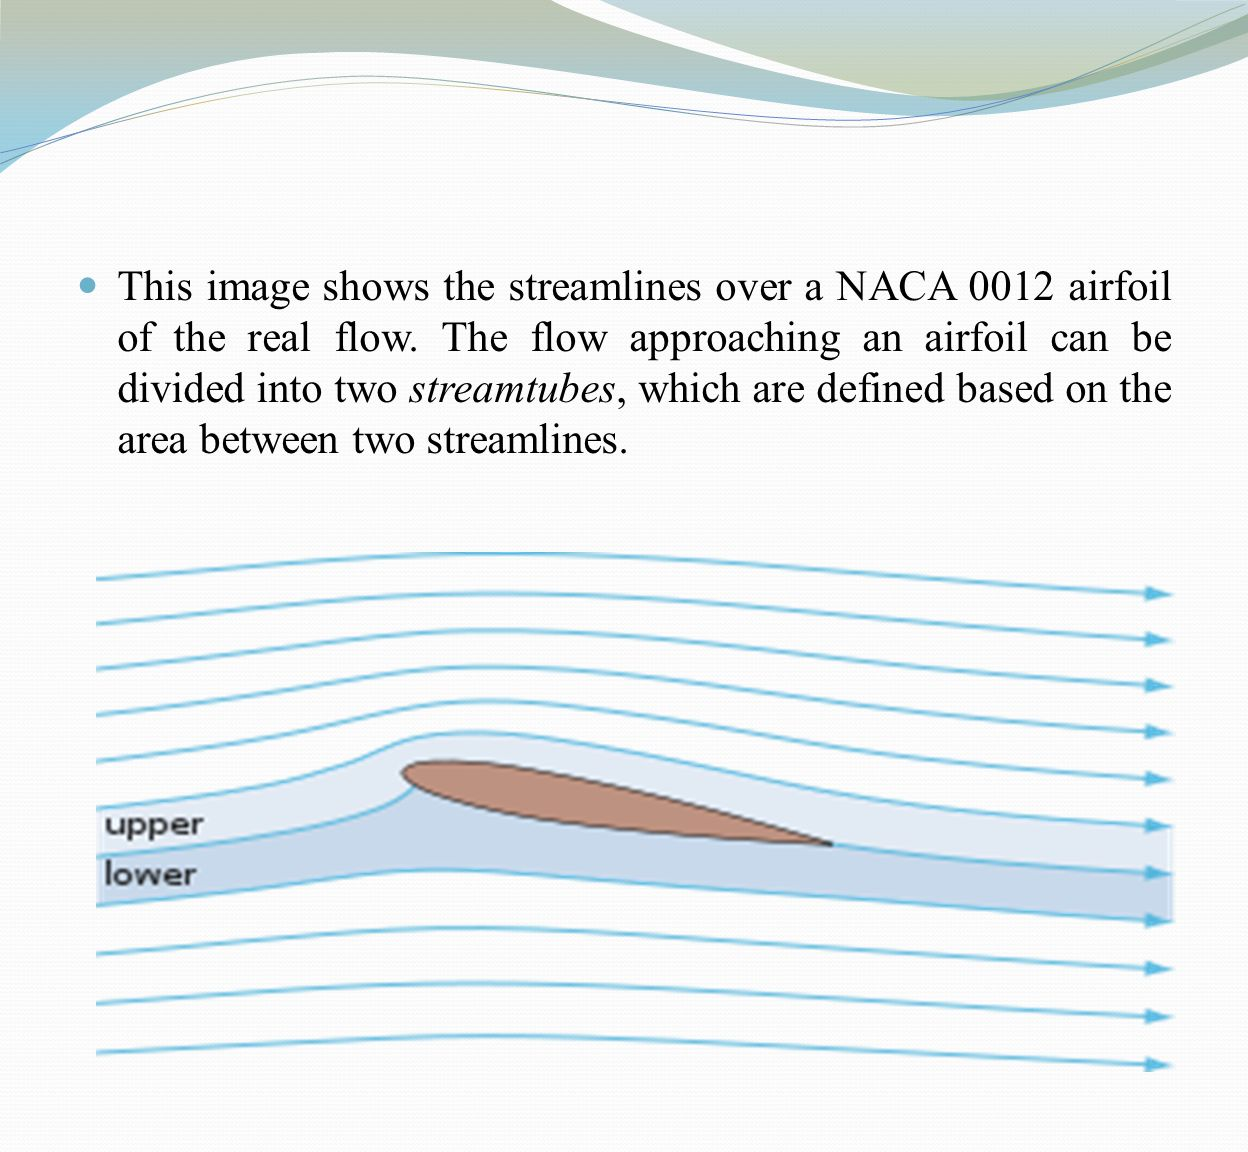 This image shows the streamlines over a NACA 0012 airfoil of the real flow.